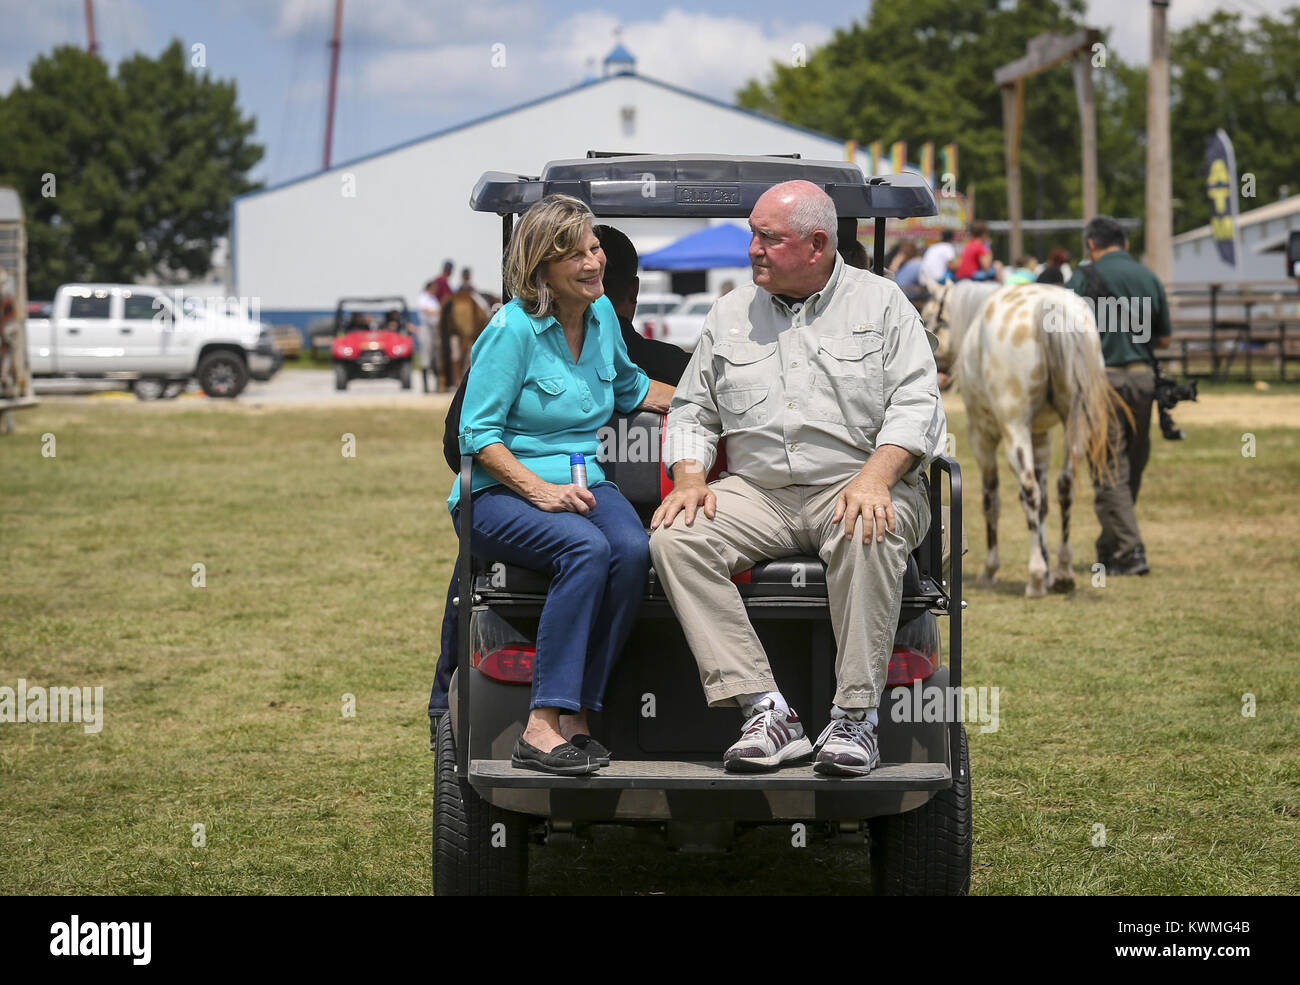 Davenport, Iowa, USA. 6th Aug, 2017. U.S. Secretary of Agriculture Sonny Perdue and wife, Mary Ruff, ride on the - Stock Image